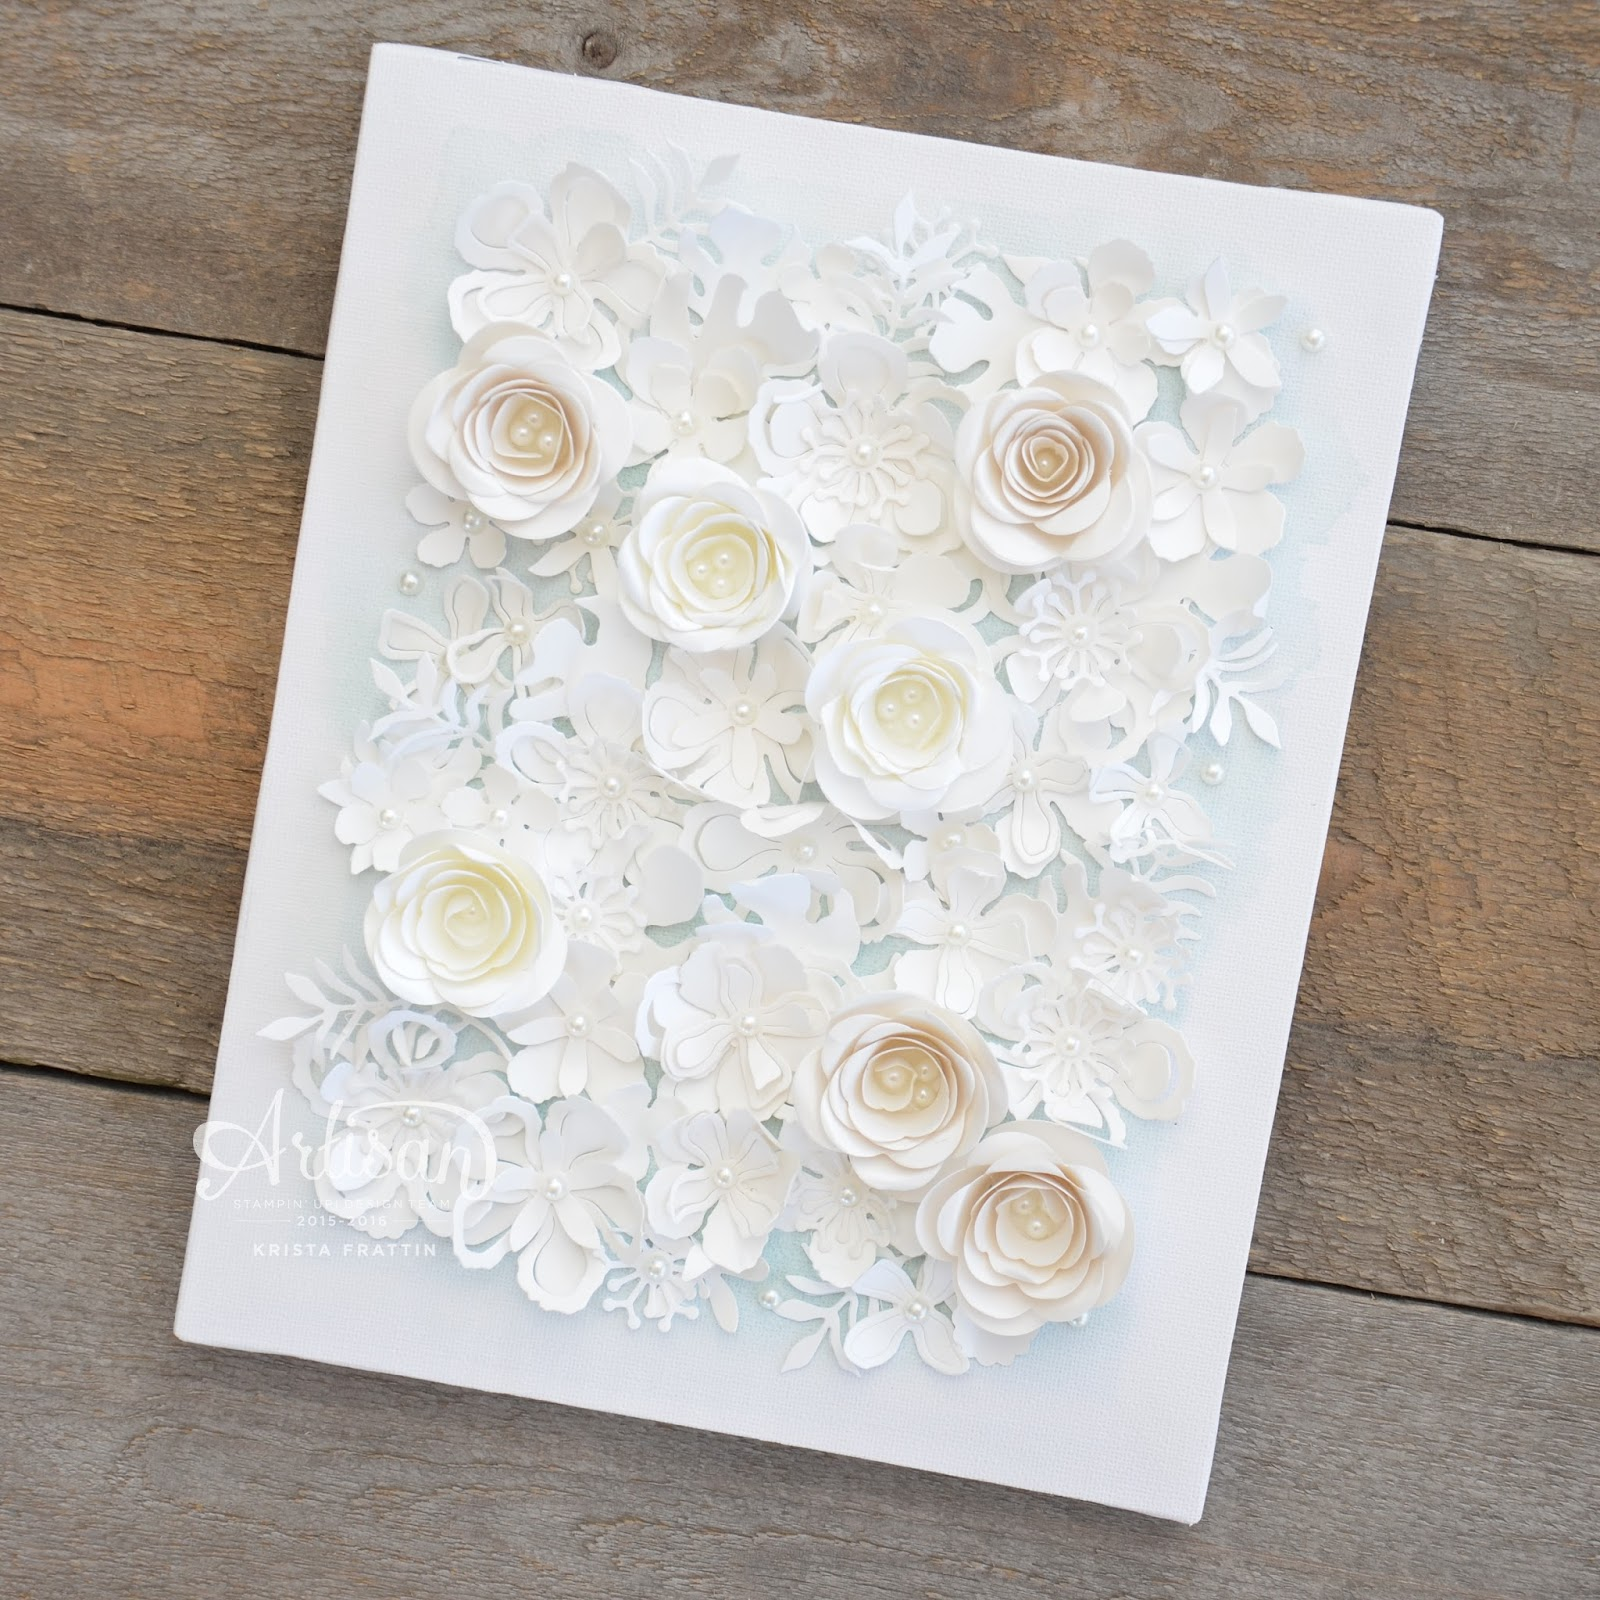 Stampin dolce dolce spring retreat paper flower canvas dolce spring retreat paper flower canvas mightylinksfo